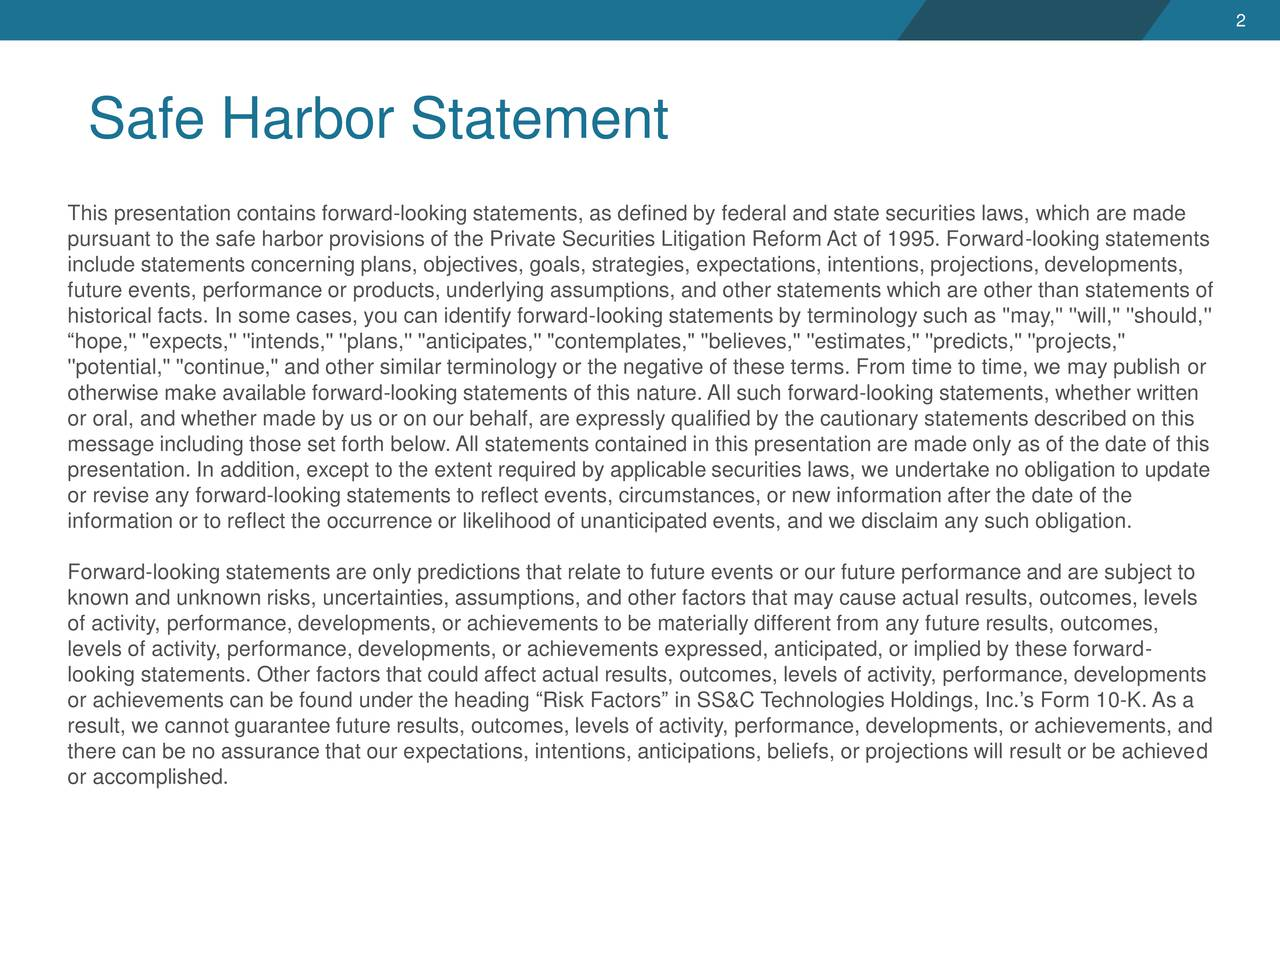 """Safe Harbor Statement This presentation contains forward-looking statements, as defined by federal and state securities laws, which are made pursuant to the safe harbor provisions of the Private Securities Litigation Reform Act of 1995. Forward-looking statements include statements concerning plans, objectives, goals, strategies, expectations, intentions, projections, developments, future events, performance or products, underlying assumptions, and other statements which are other than statements of historical facts. In some cases, you can identify forward-looking statements by terminology such as ''may,'' ''will,'' ''should,'' hope,'' """"expects,'' ''intends,'' ''plans,'' ''anticipates,'' """"contemplates,"""" ''believes,'' ''estimates,'' ''predicts,'' ''projects,'' ''potential,'' ''continue,'' and other similar terminology or the negative of these terms. From time to time, we may publish or otherwise make available forward-looking statements of this nature. All such forward-looking statements, whether written or oral, and whether made by us or on our behalf, are expressly qualified by the cautionary statements described on this message including those set forth below. All statements contained in this presentation are made only as of the date of this presentation. In addition, except to the extent required by applicable securities laws, we undertake no obligation to update or revise any forward-looking statements to reflect events, circumstances, or new information after the date of the information or to reflect the occurrence or likelihood of unanticipated events, and we disclaim any such obligation. Forward-looking statements are only predictions that relate to future events or our future performance and are subject to known and unknown risks, uncertainties, assumptions, and other factors that may cause actual results, outcomes, levels of activity, performance, developments, or achievements to be materially different from any future results, outcomes, levels of activity,"""